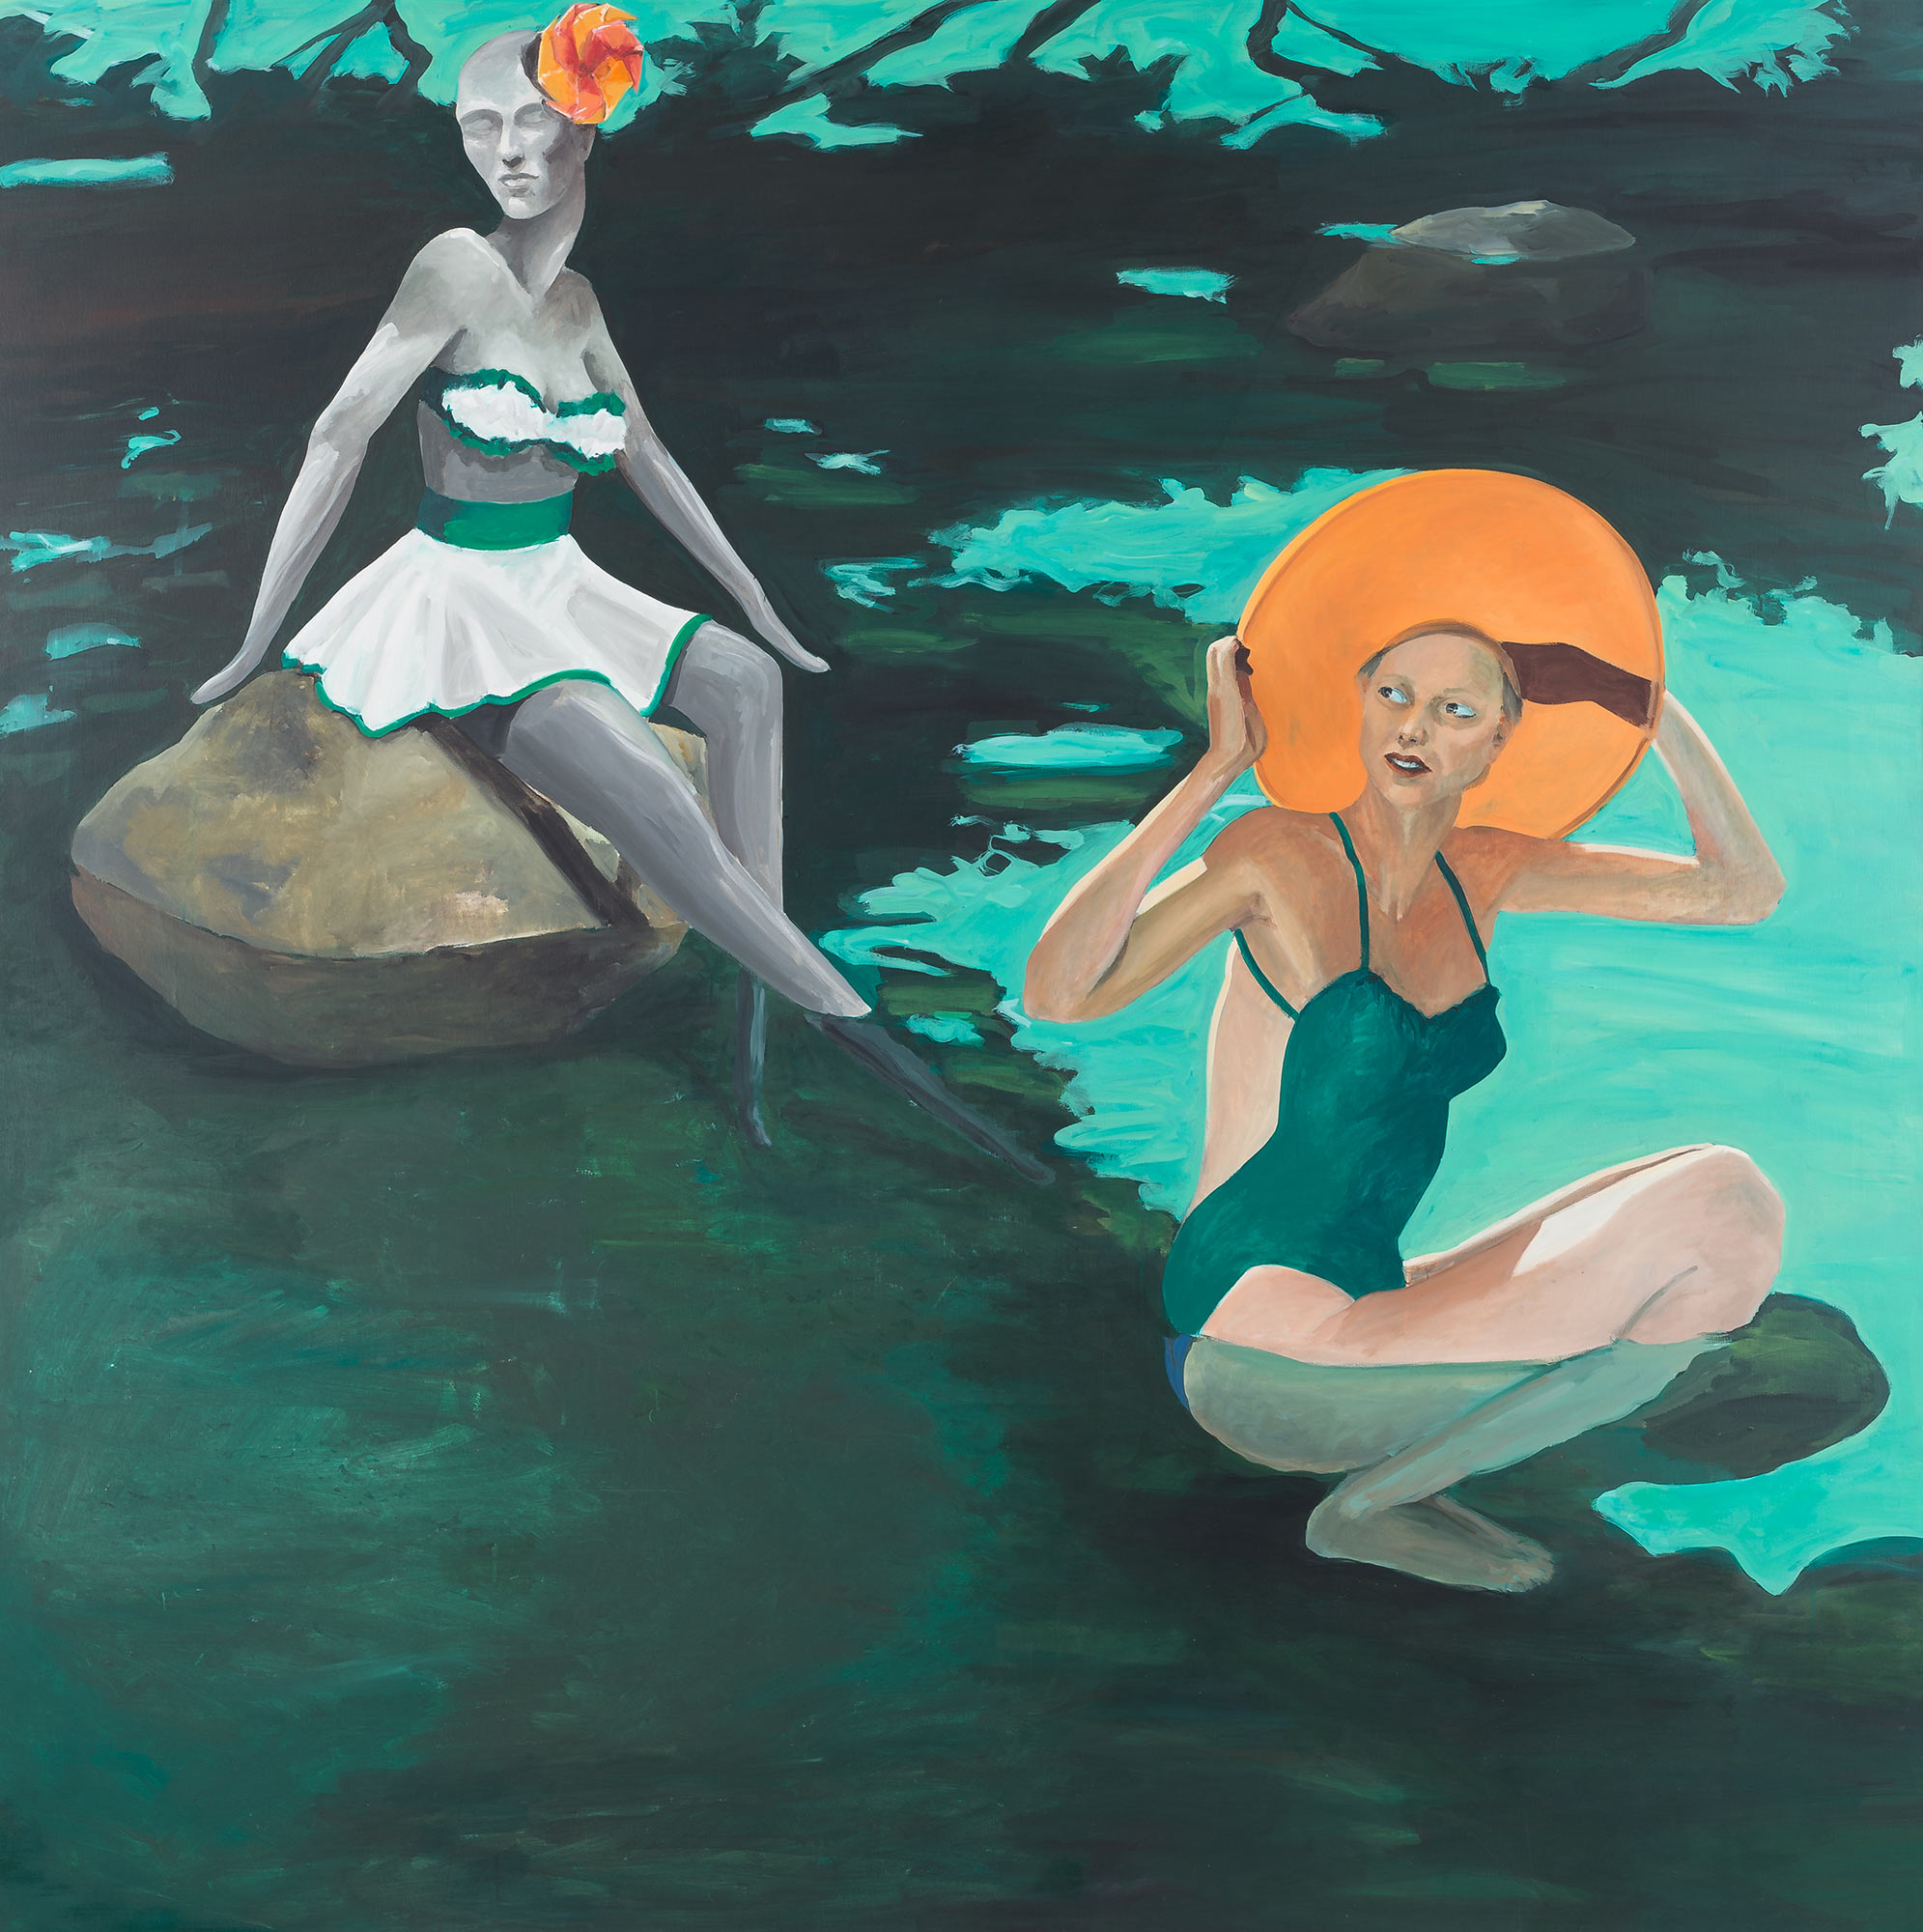 Women in Water (A Question of Fashion), 1980. Oil on Canvas. 90 x 90 in. (229 x 229 cm.)